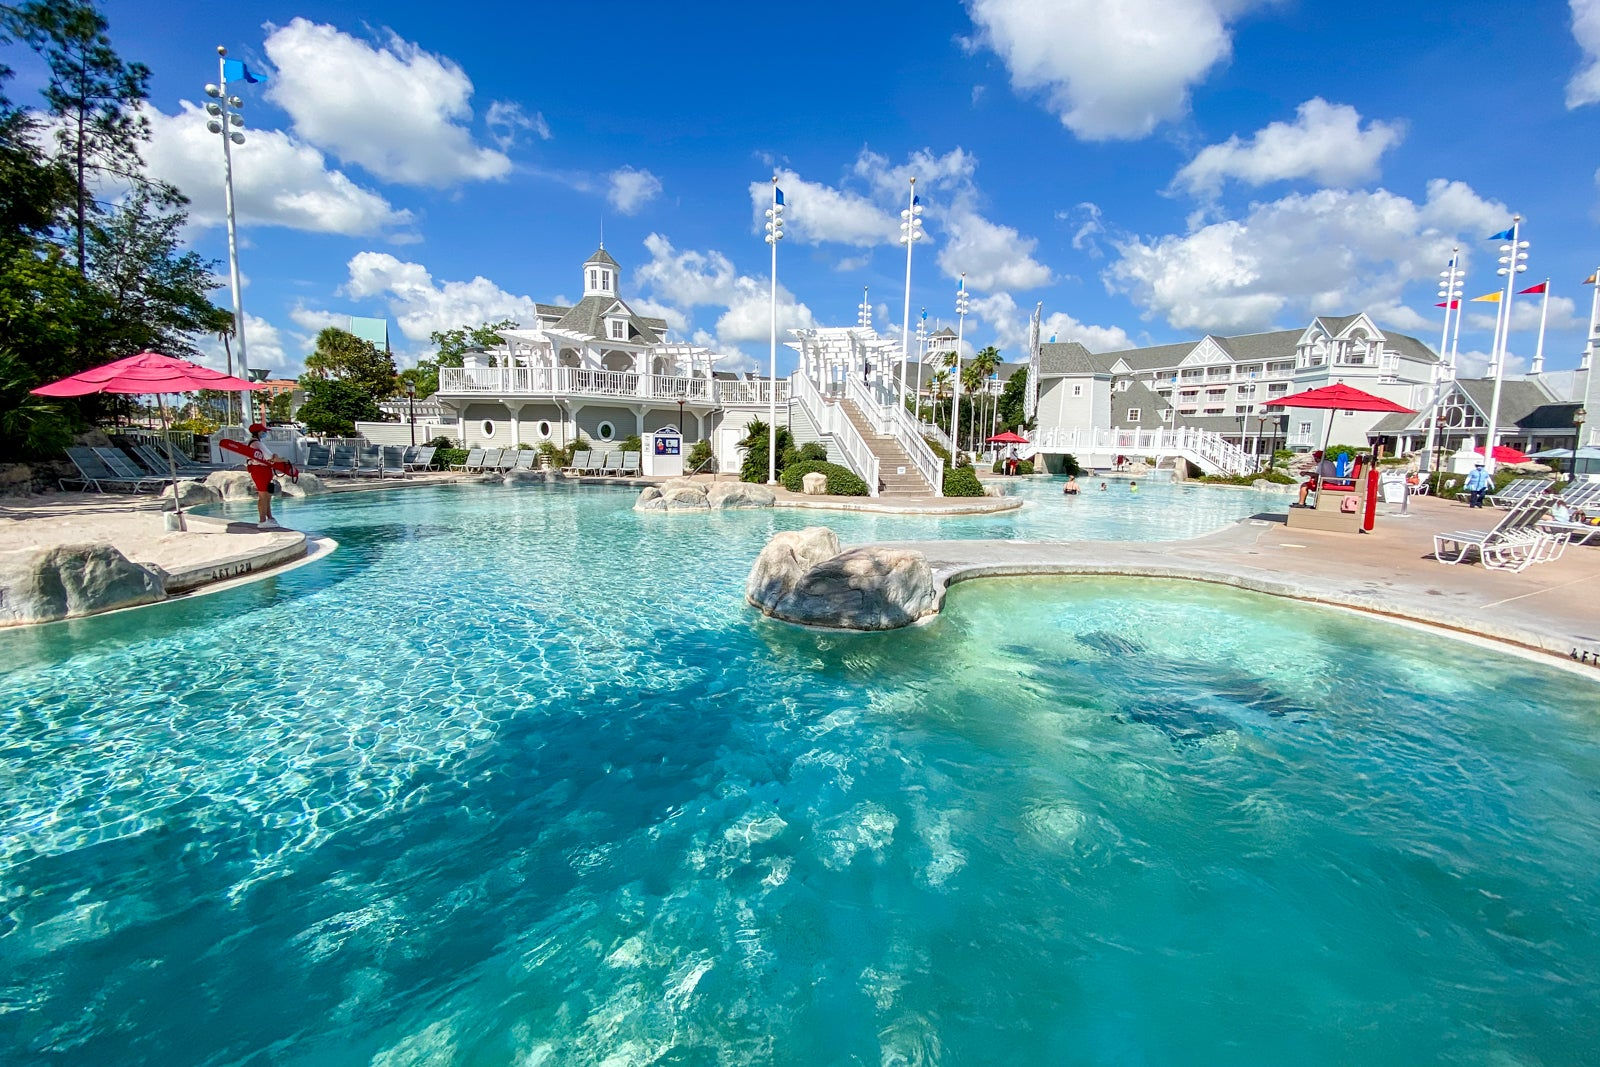 Hotel with the best pool complex at Disney World: Review of Disney's Yacht Club Resort - The Points Guy